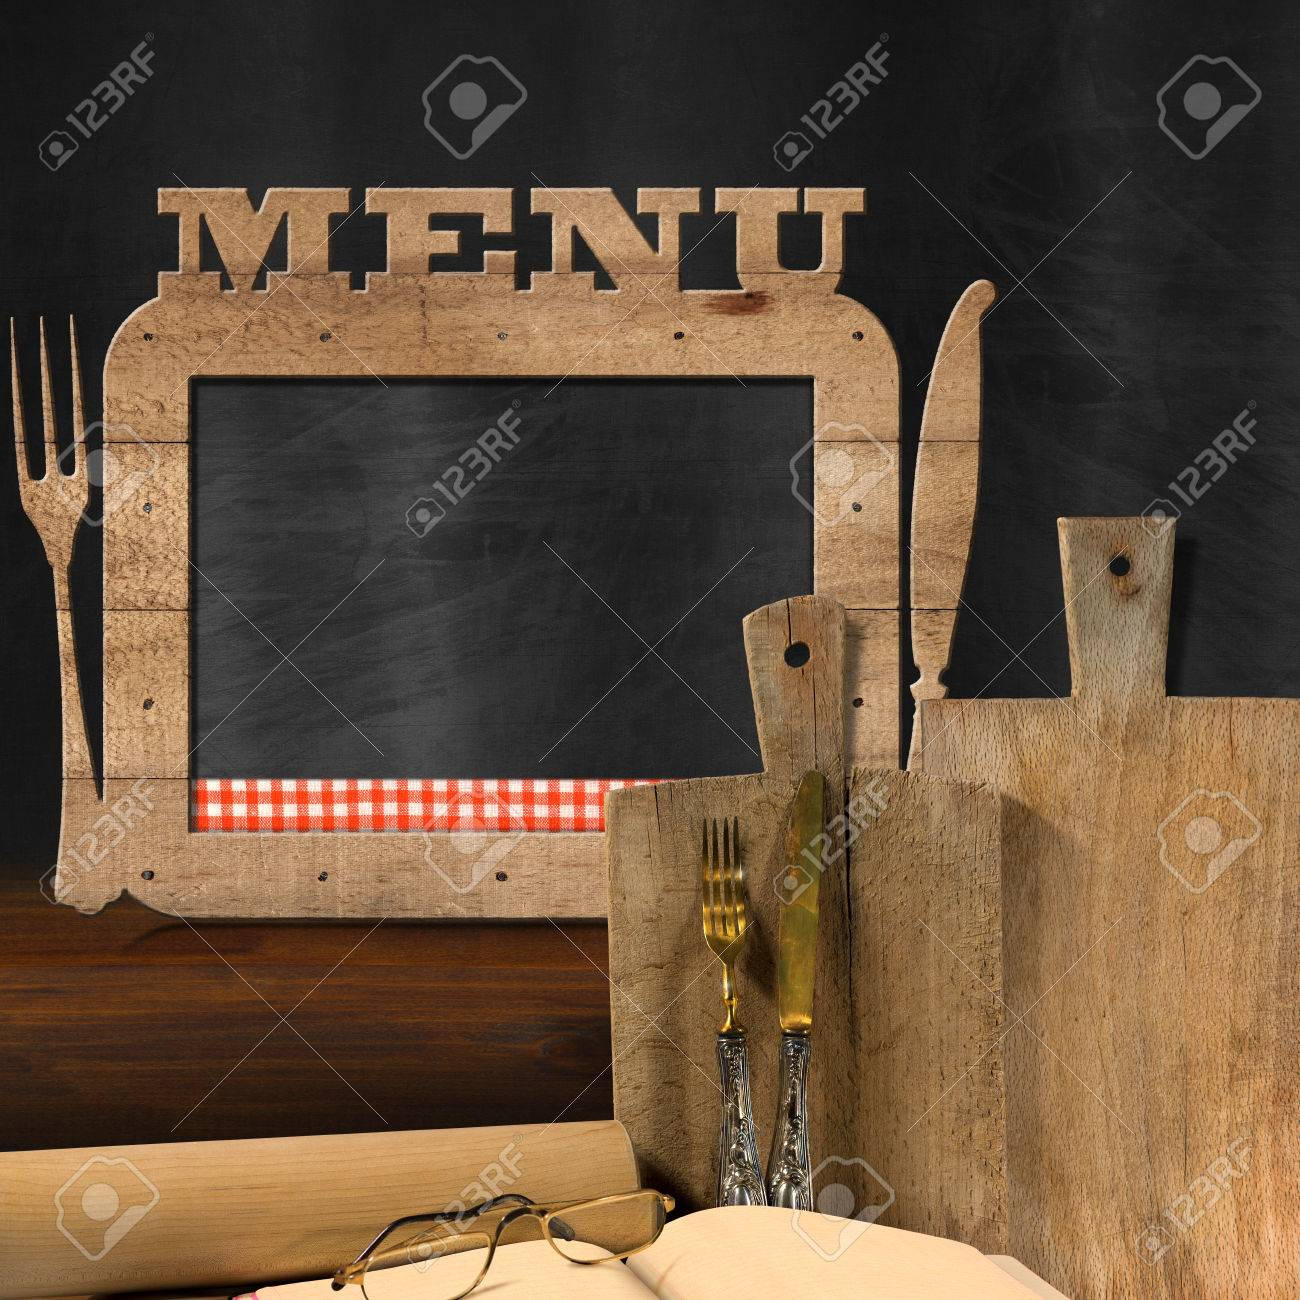 Tafel Küche Stock Photo